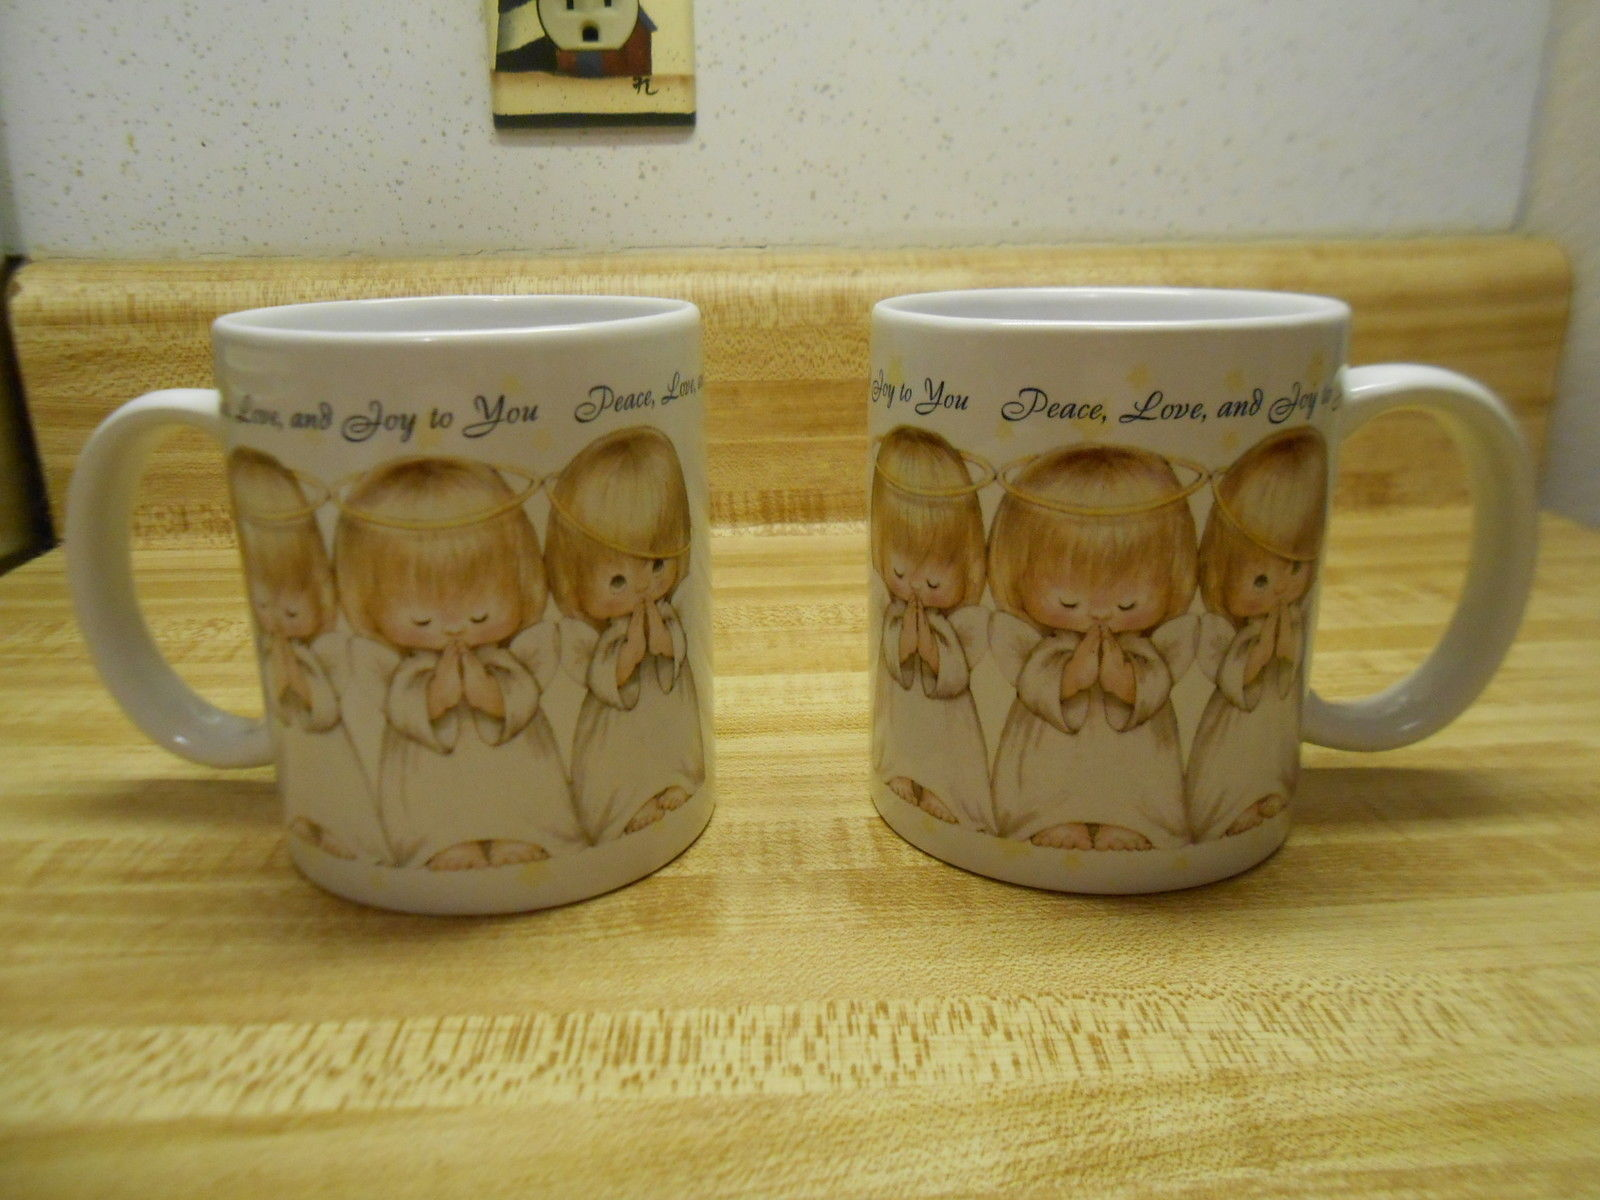 Primary image for hallmark mugs with praying angels peace love and joy to you, with fallen halo